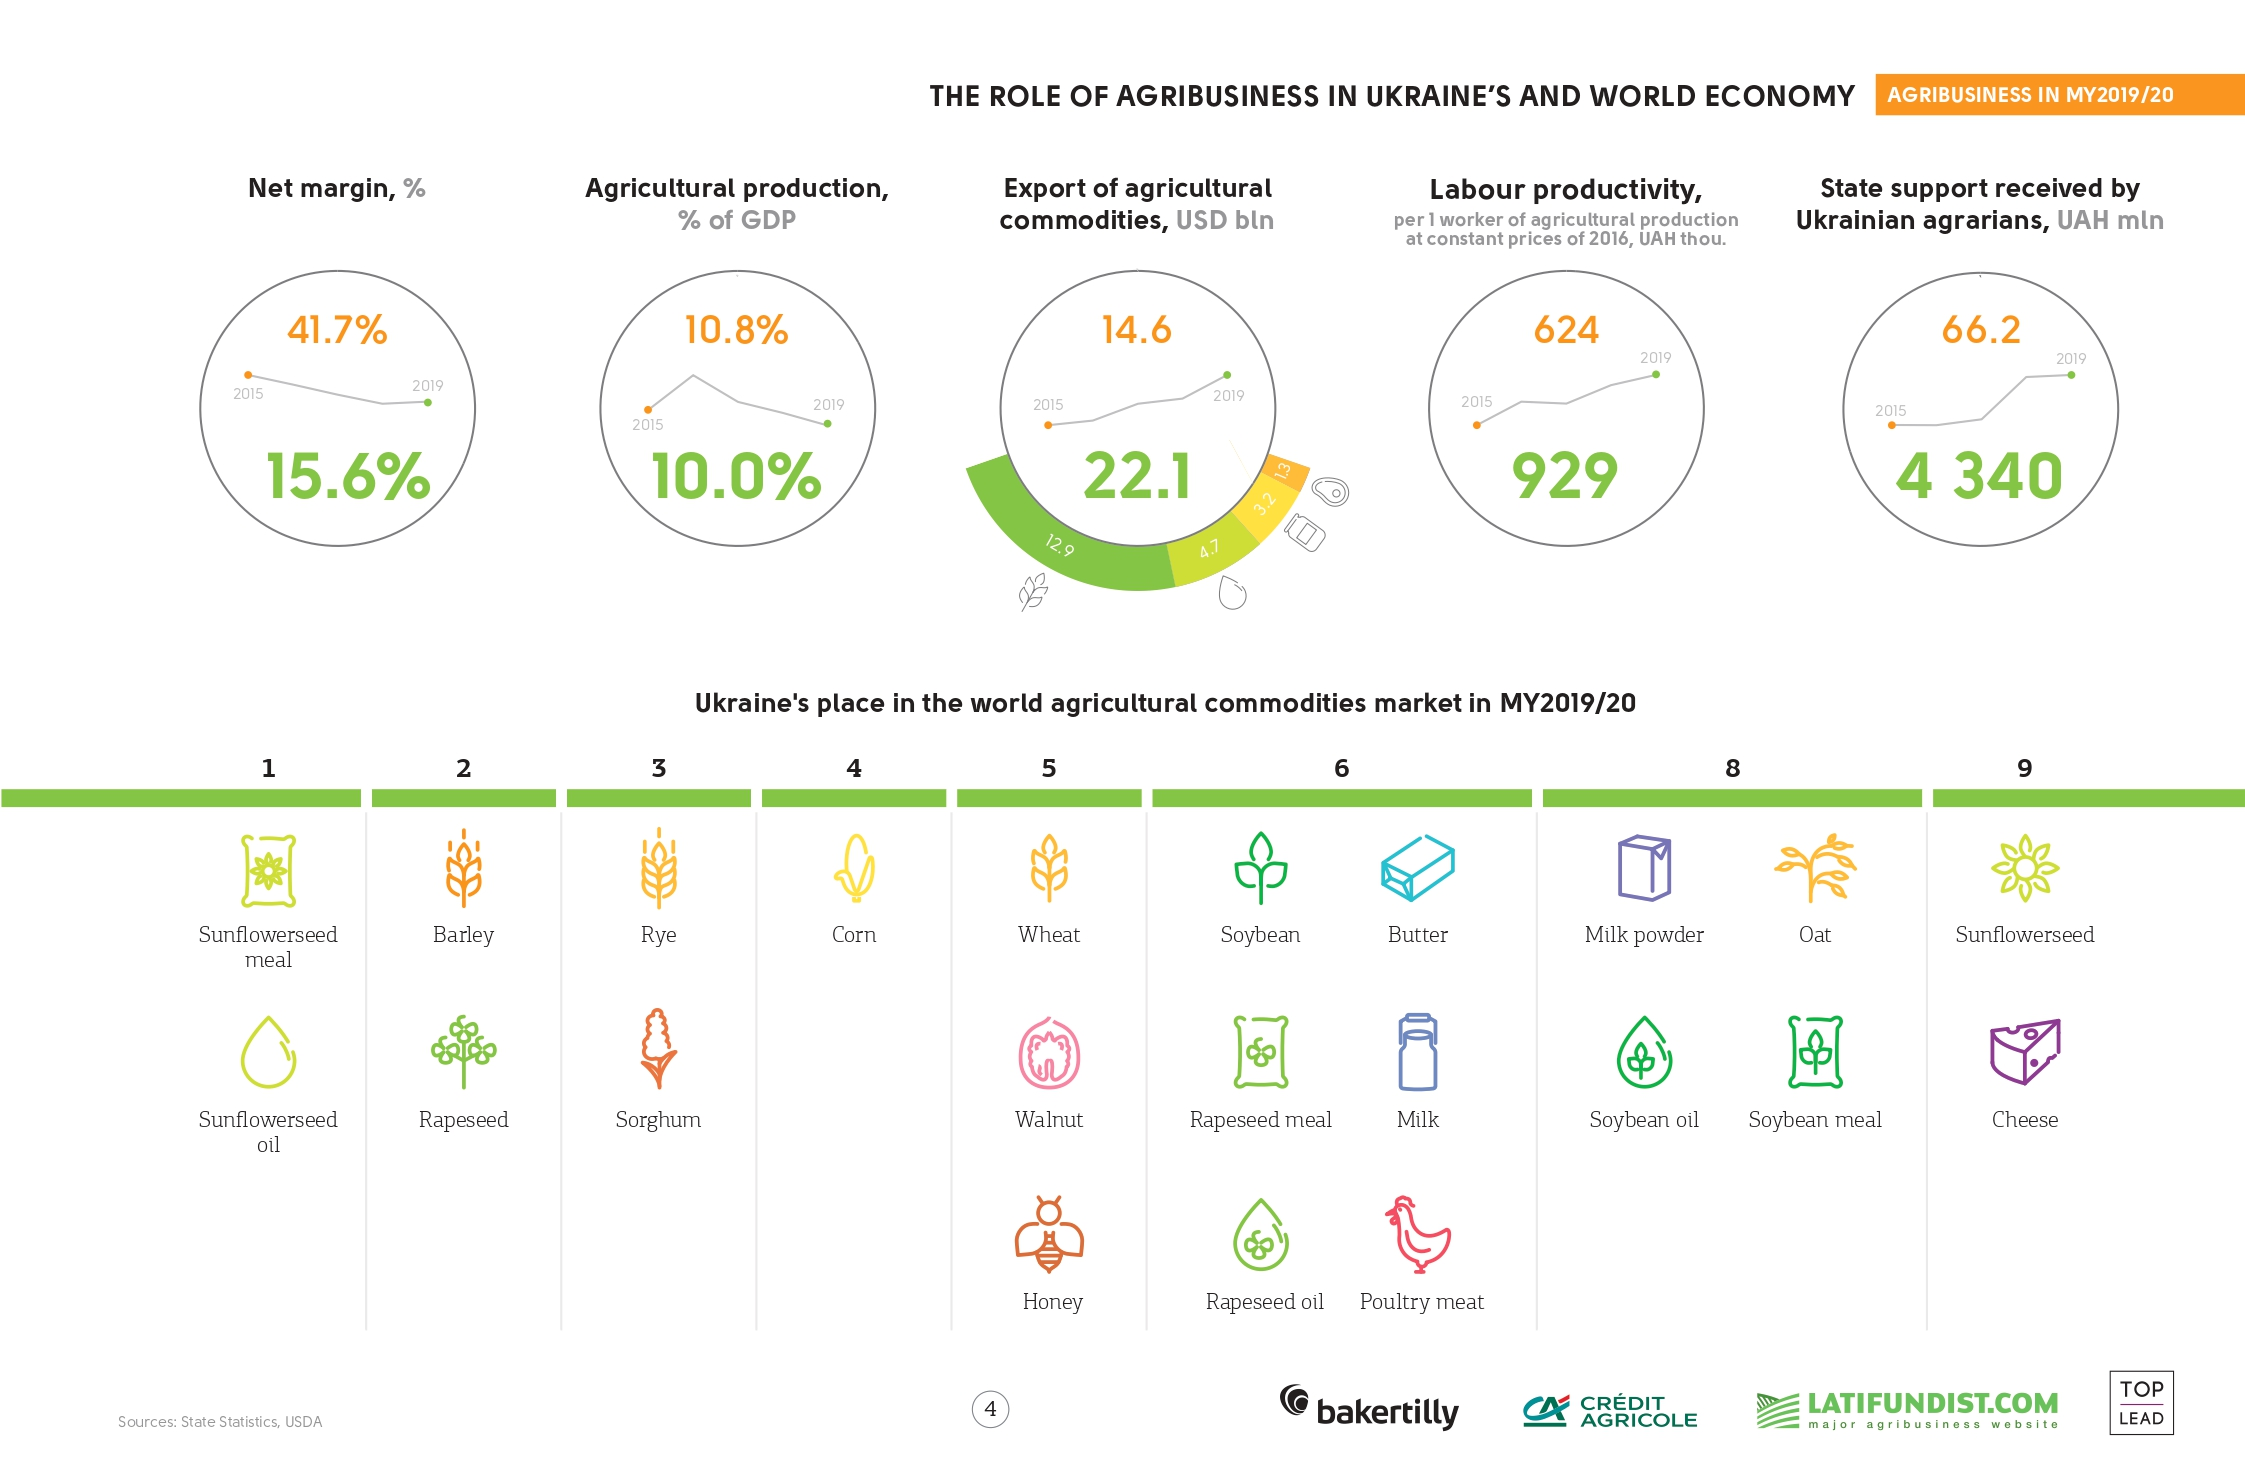 The role of agribusiness in Ukraine's and world economy (click for full resolution)